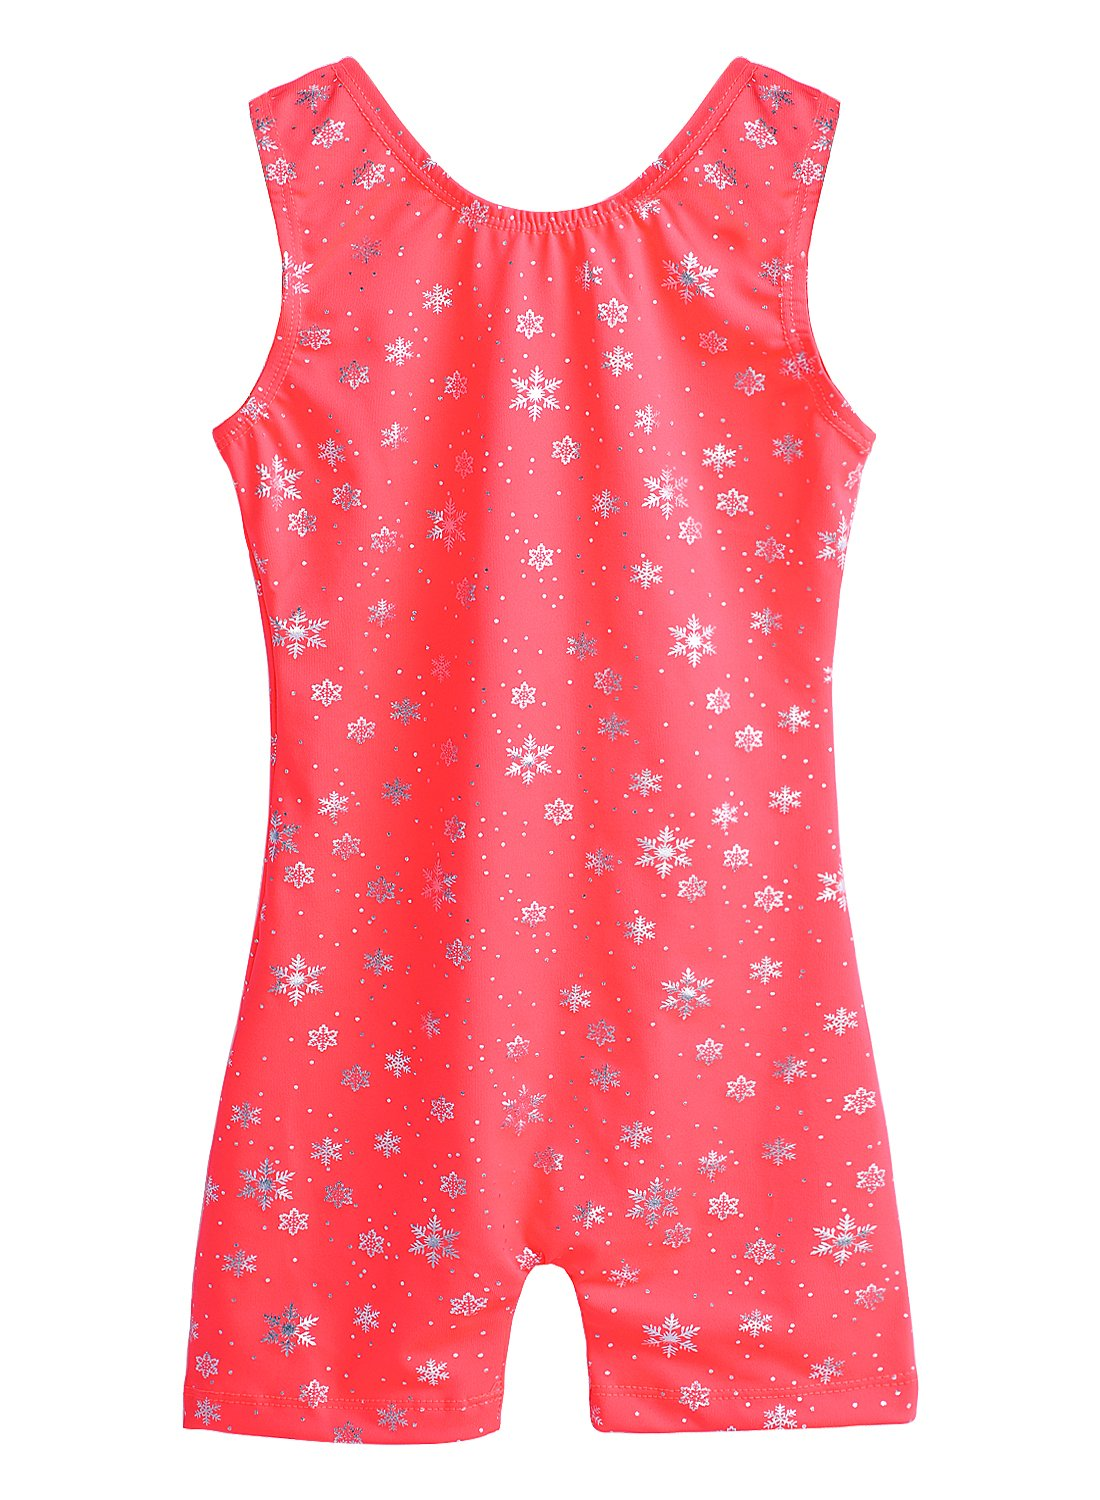 One-Piece Shiny Snowflake Orange Gymnastics Biketard for Little Girl DAXIANG